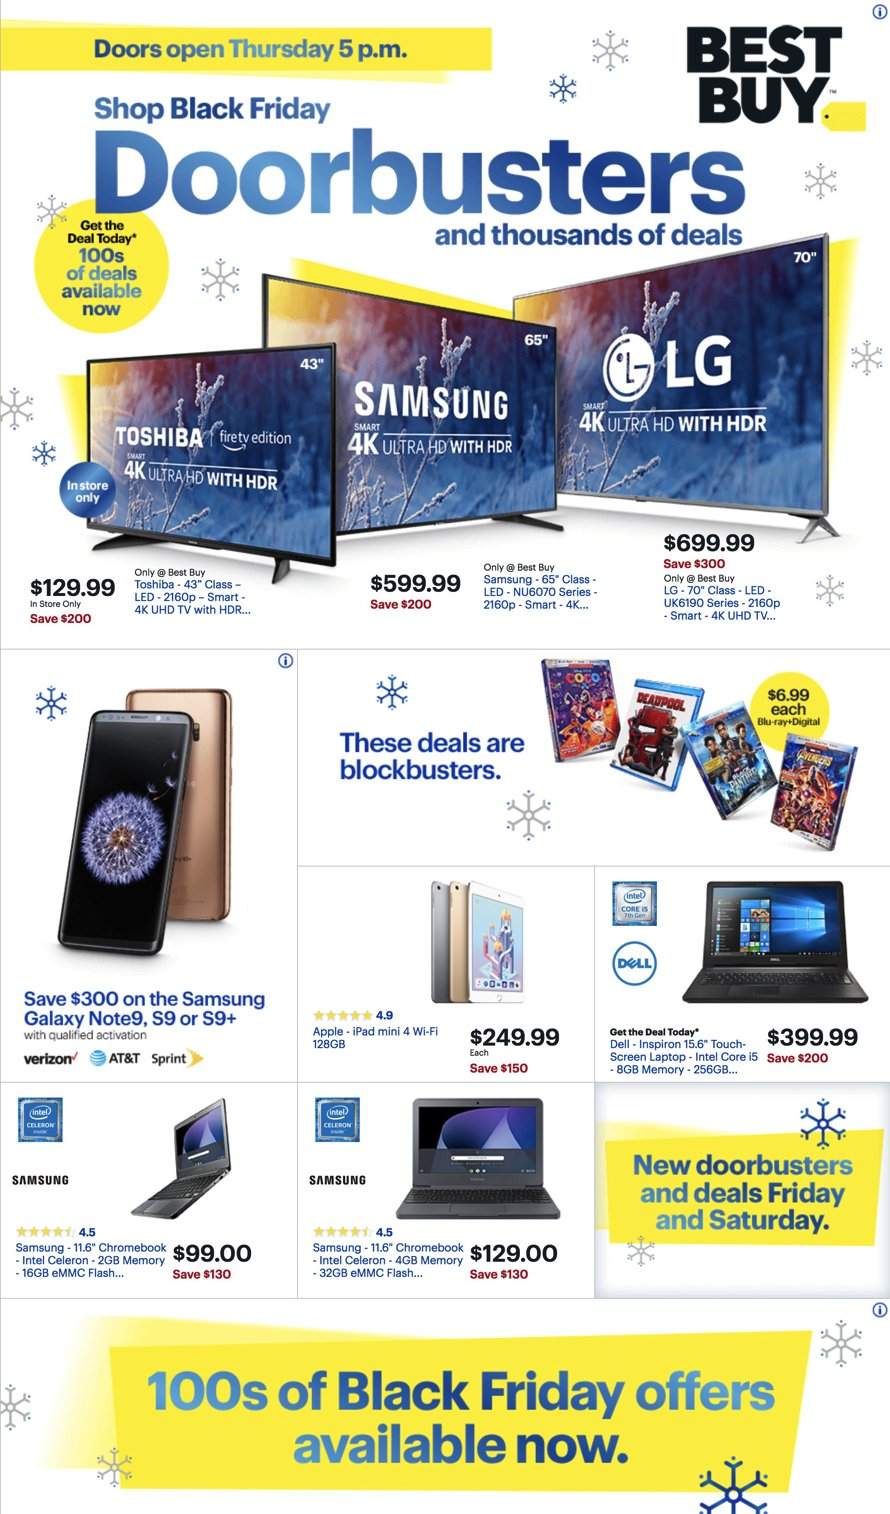 Best Buy Black Friday 2018 Page 1